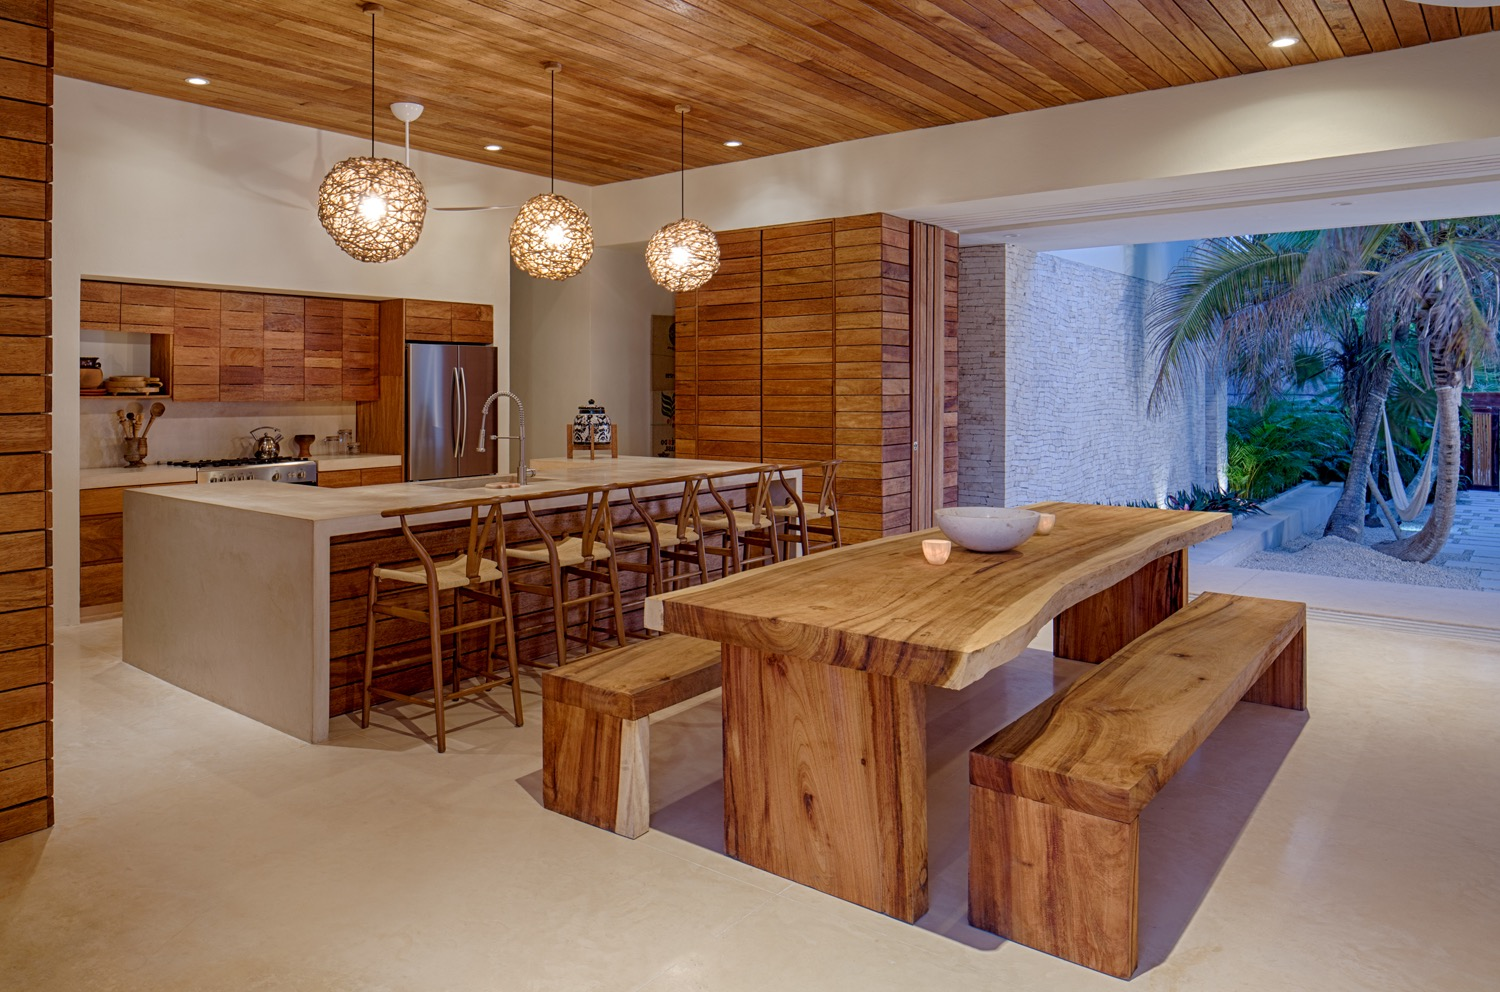 Wood Paneled Kitchen And Dining Room With Wood Table (Image 10 of 15)